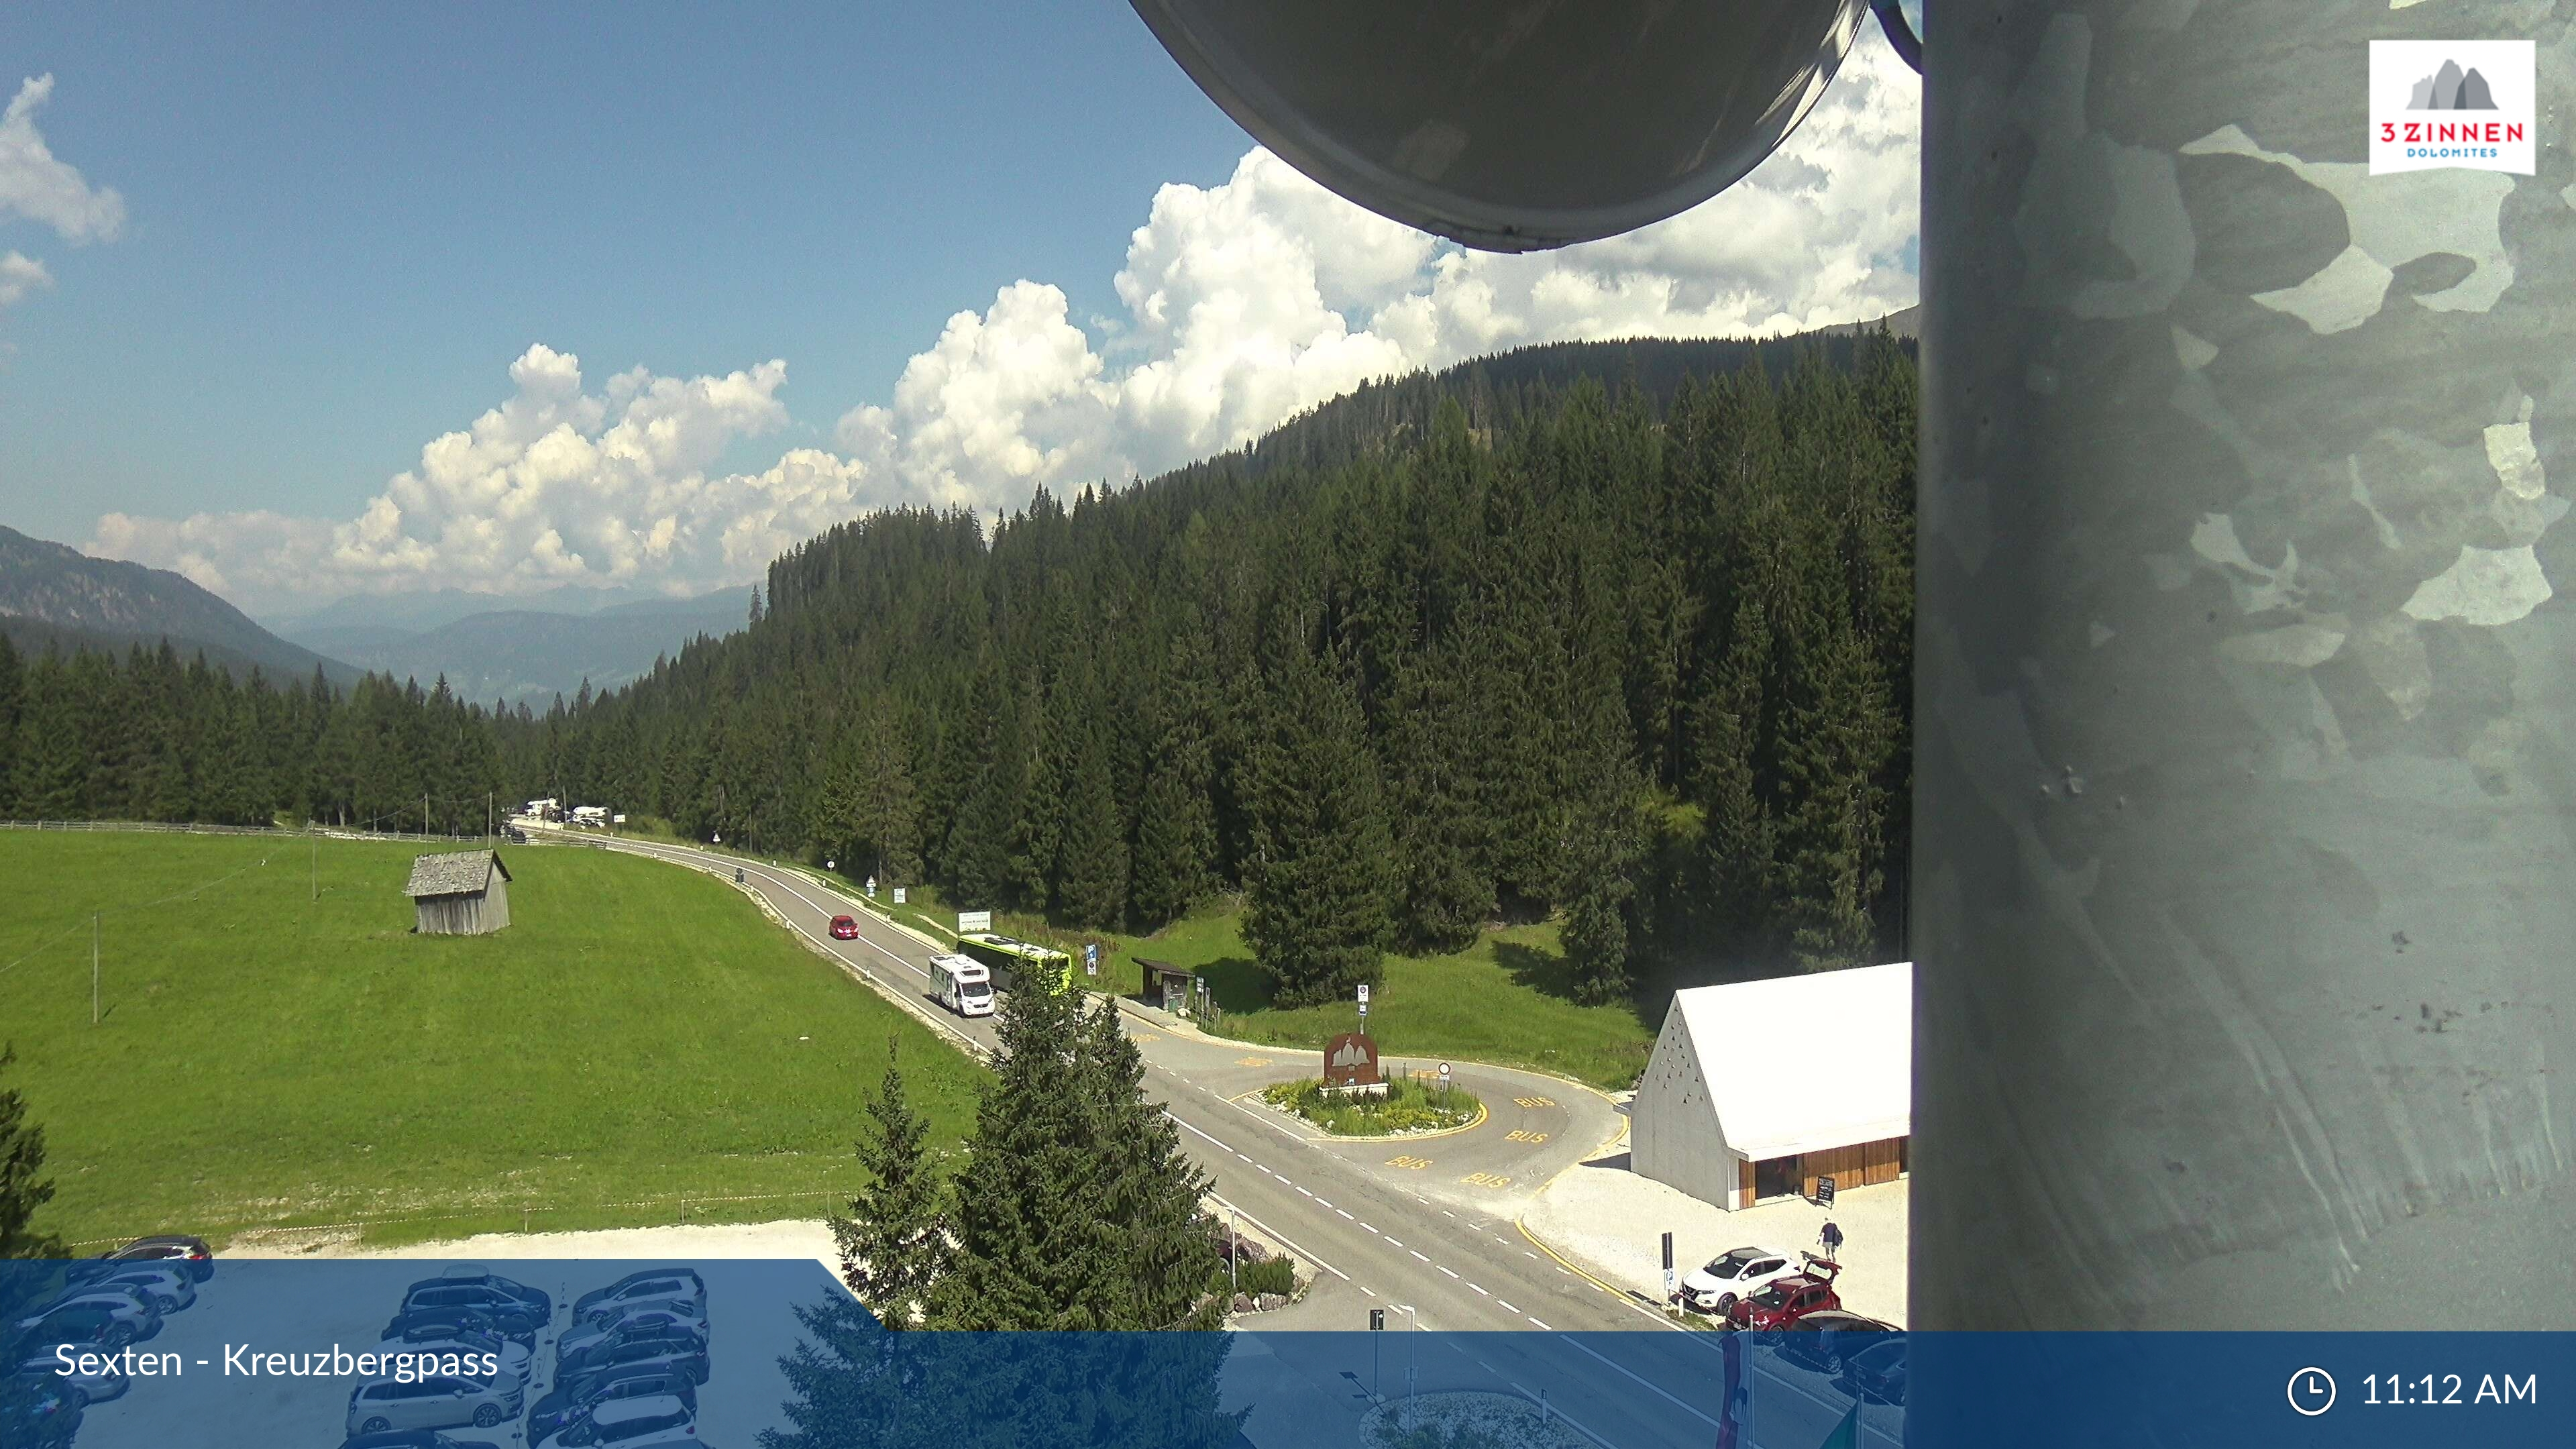 Webcam Sexten Kreuzbergpass